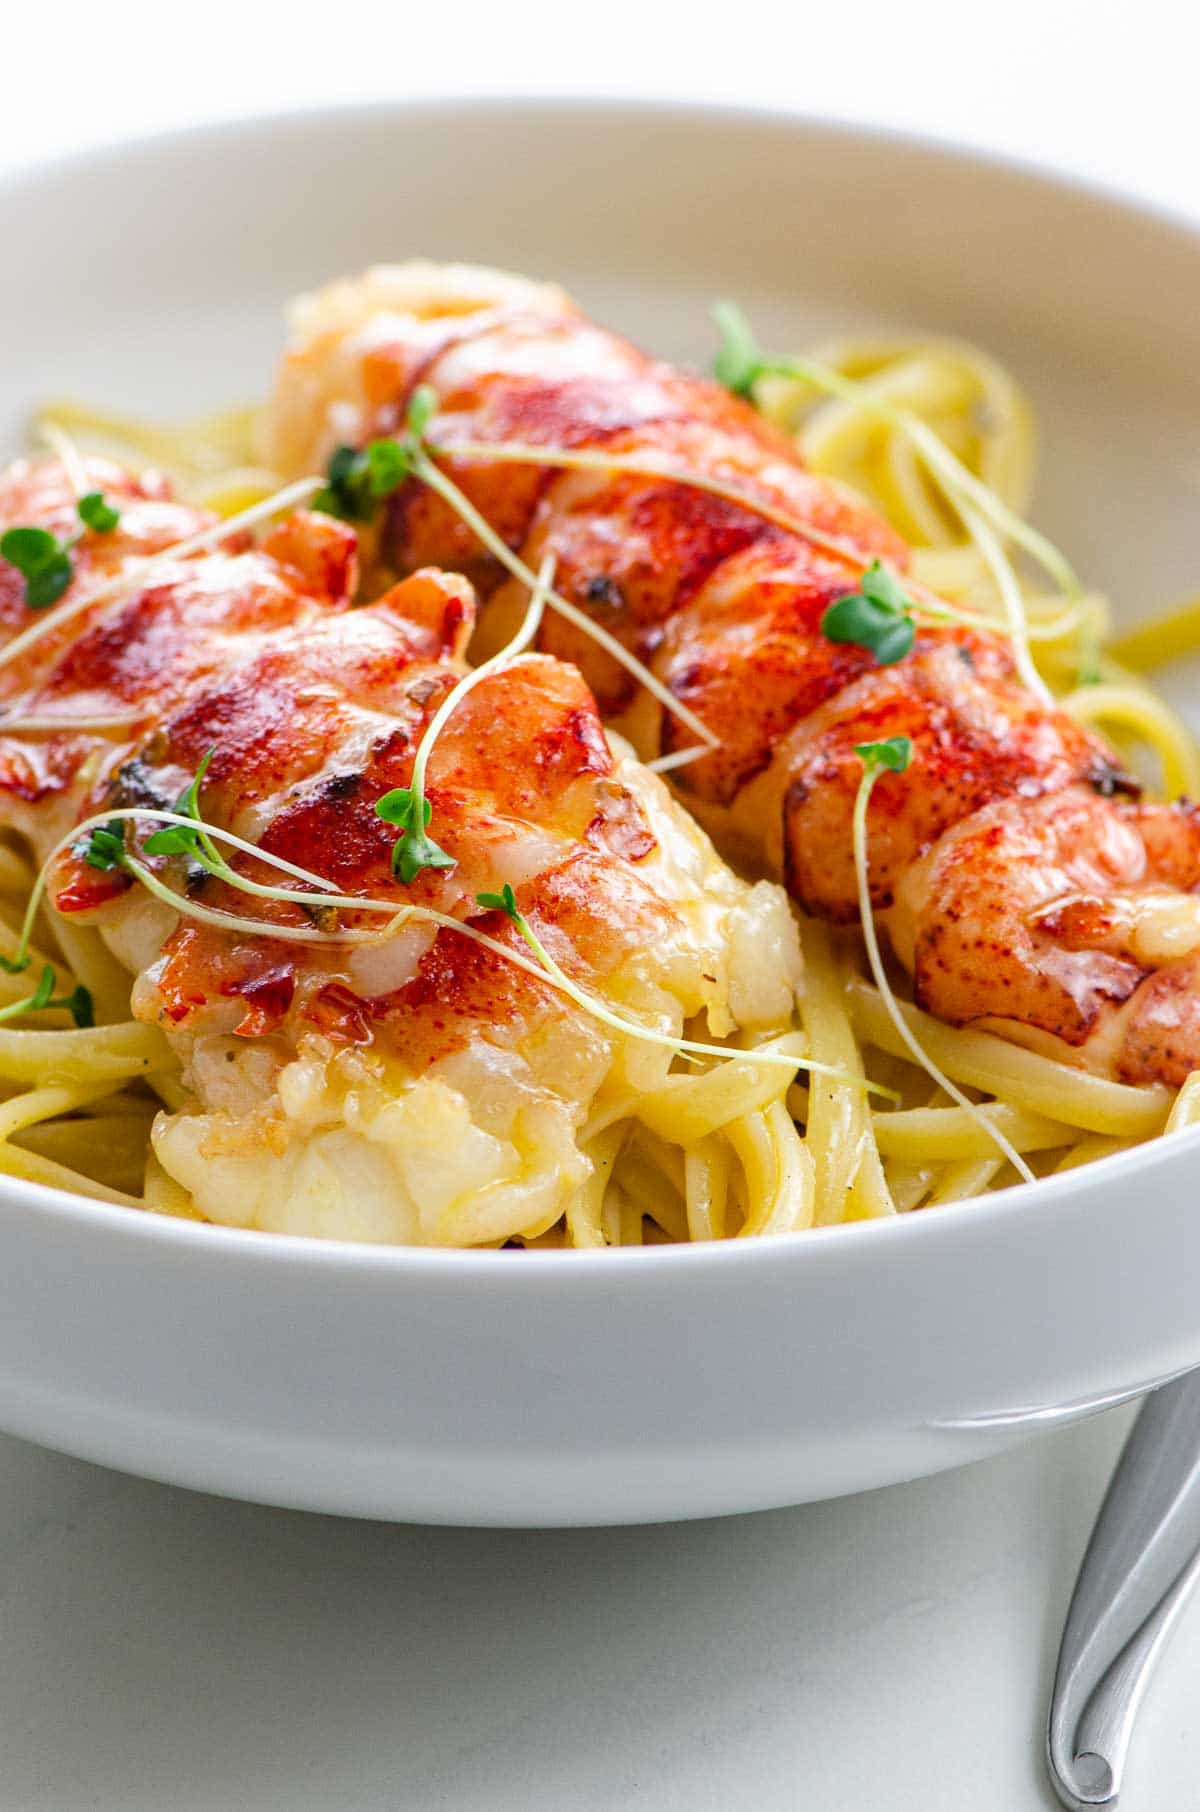 butter poached lobster tails over linguine in a bowl